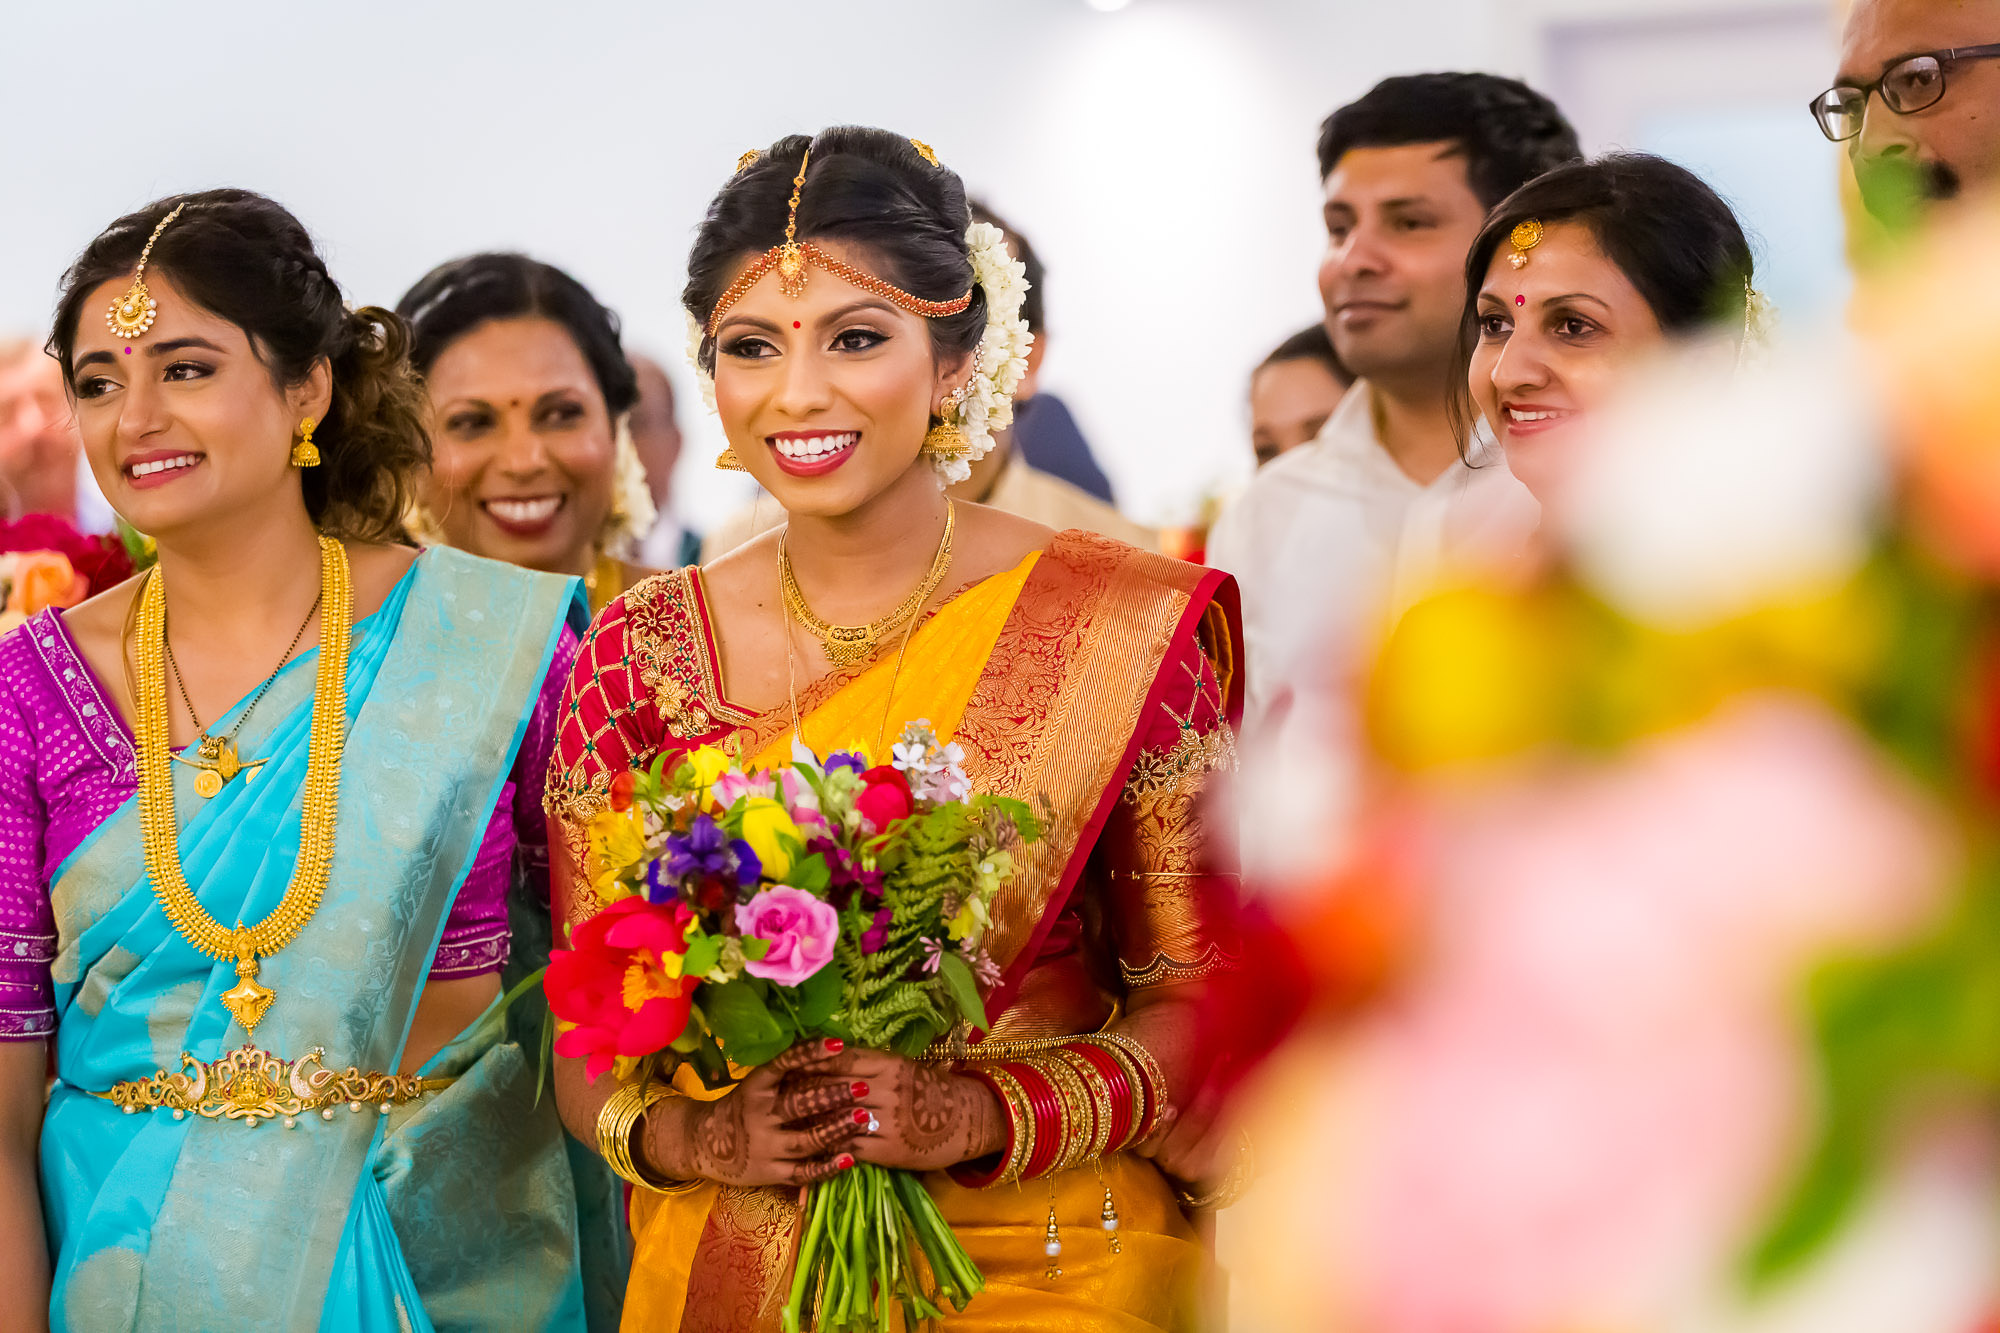 asian-wedding-hindu-tamil-photographer-heythorpe-oxford-0039.jpg